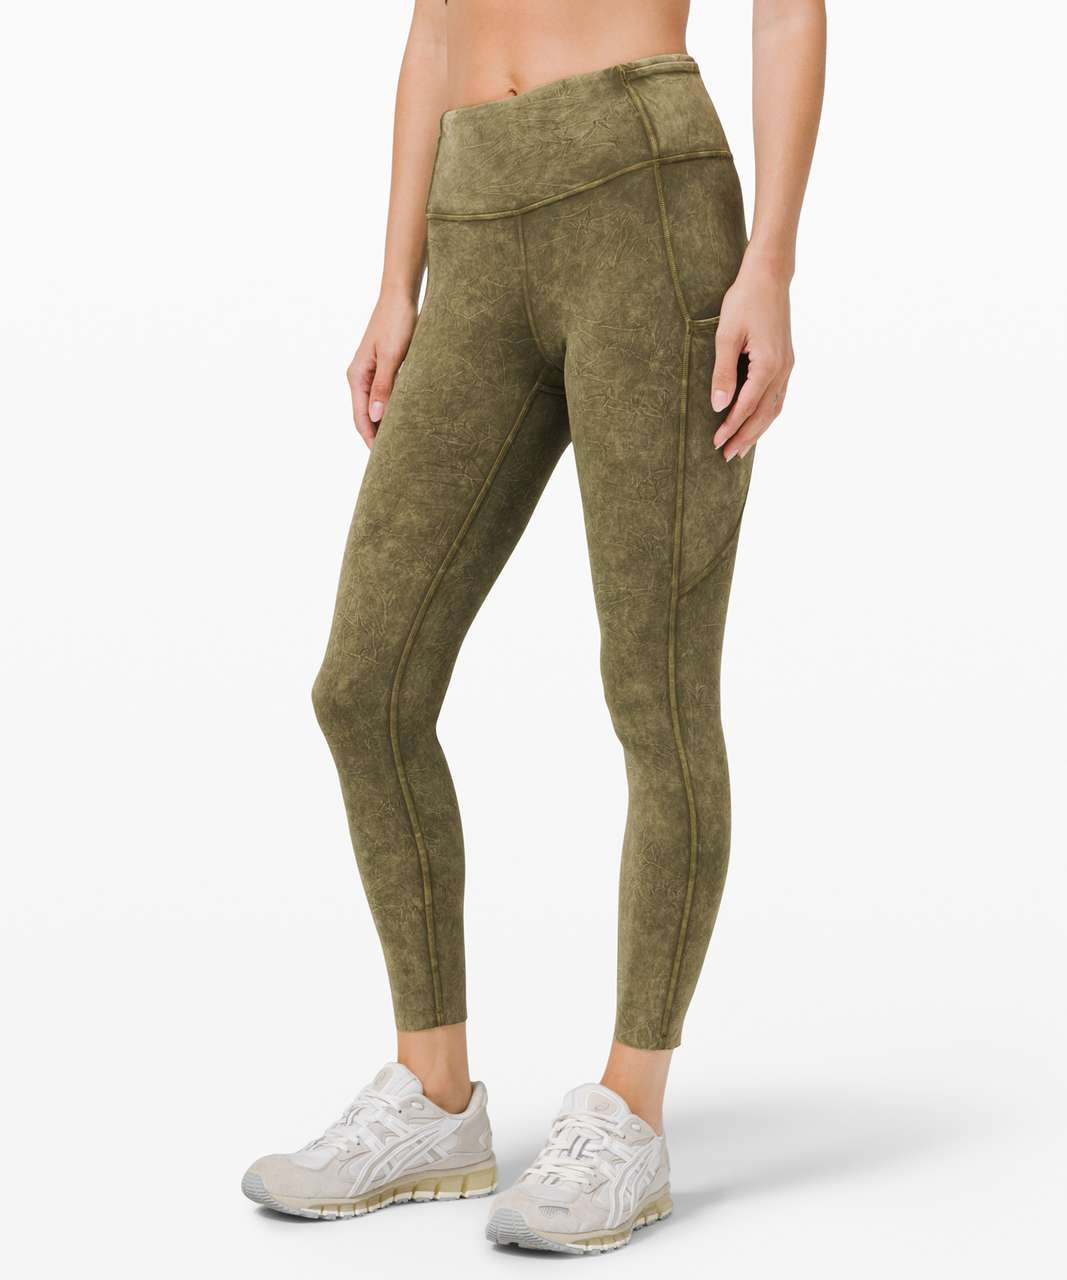 """Lululemon Fast and Free High Rise Tight 25"""" *Ice Dye - Ice Wash Moss Green"""